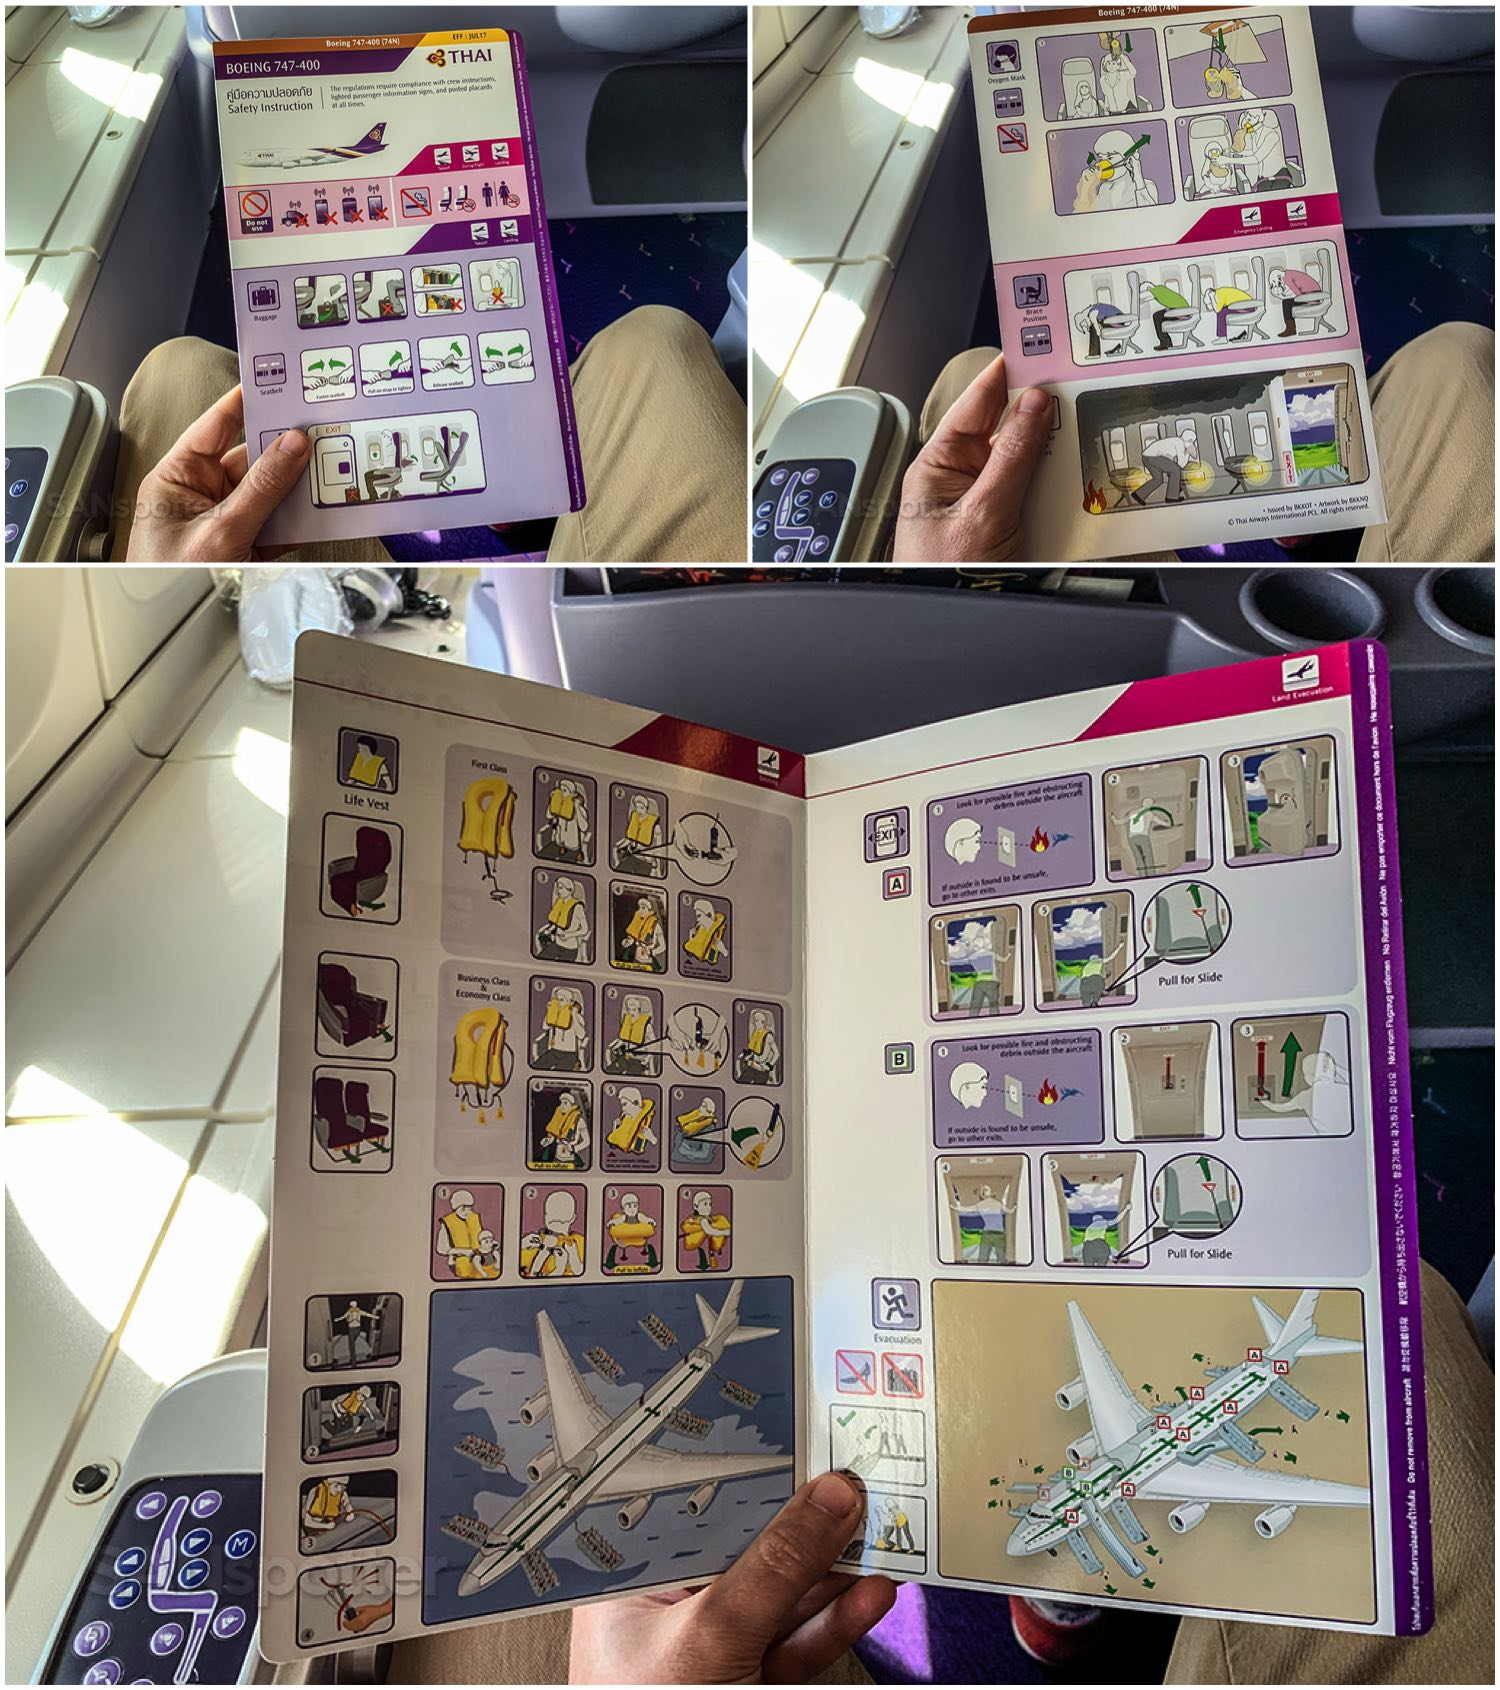 Thai Airways 747-400 safety card